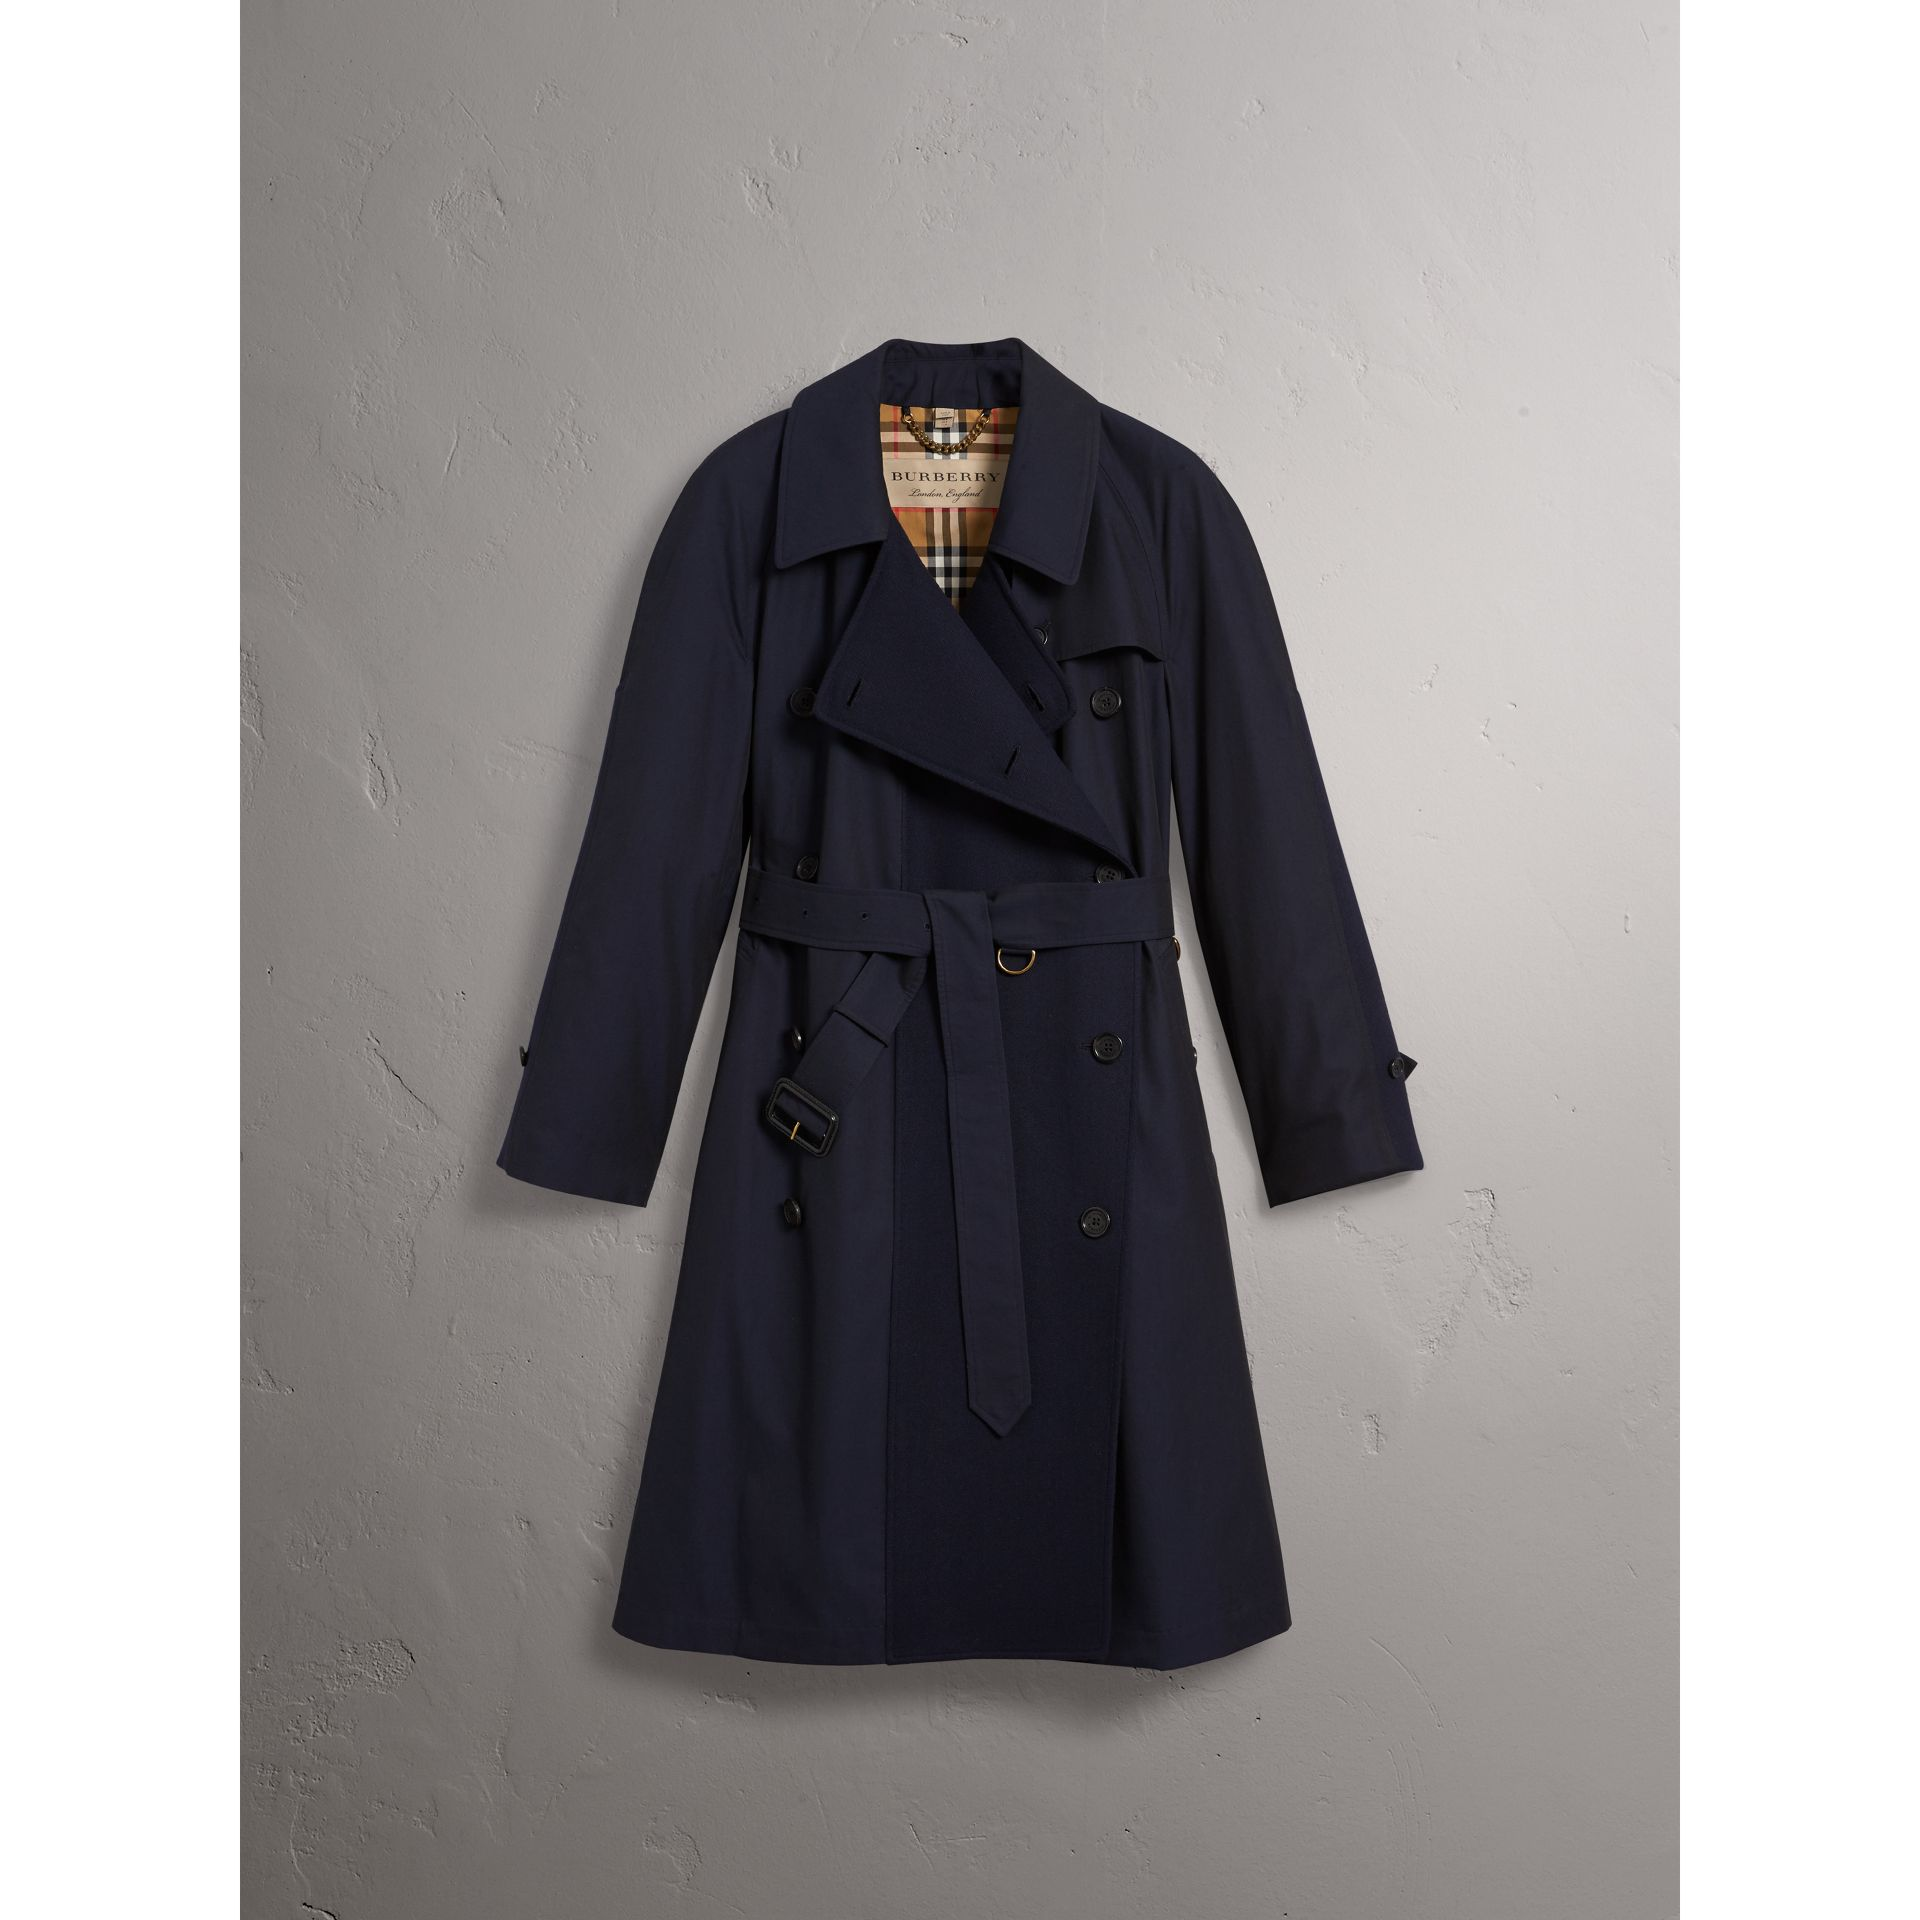 Trench asymétrique en gabardine tropicale (Bleu Carbone) - Femme | Burberry - photo de la galerie 3